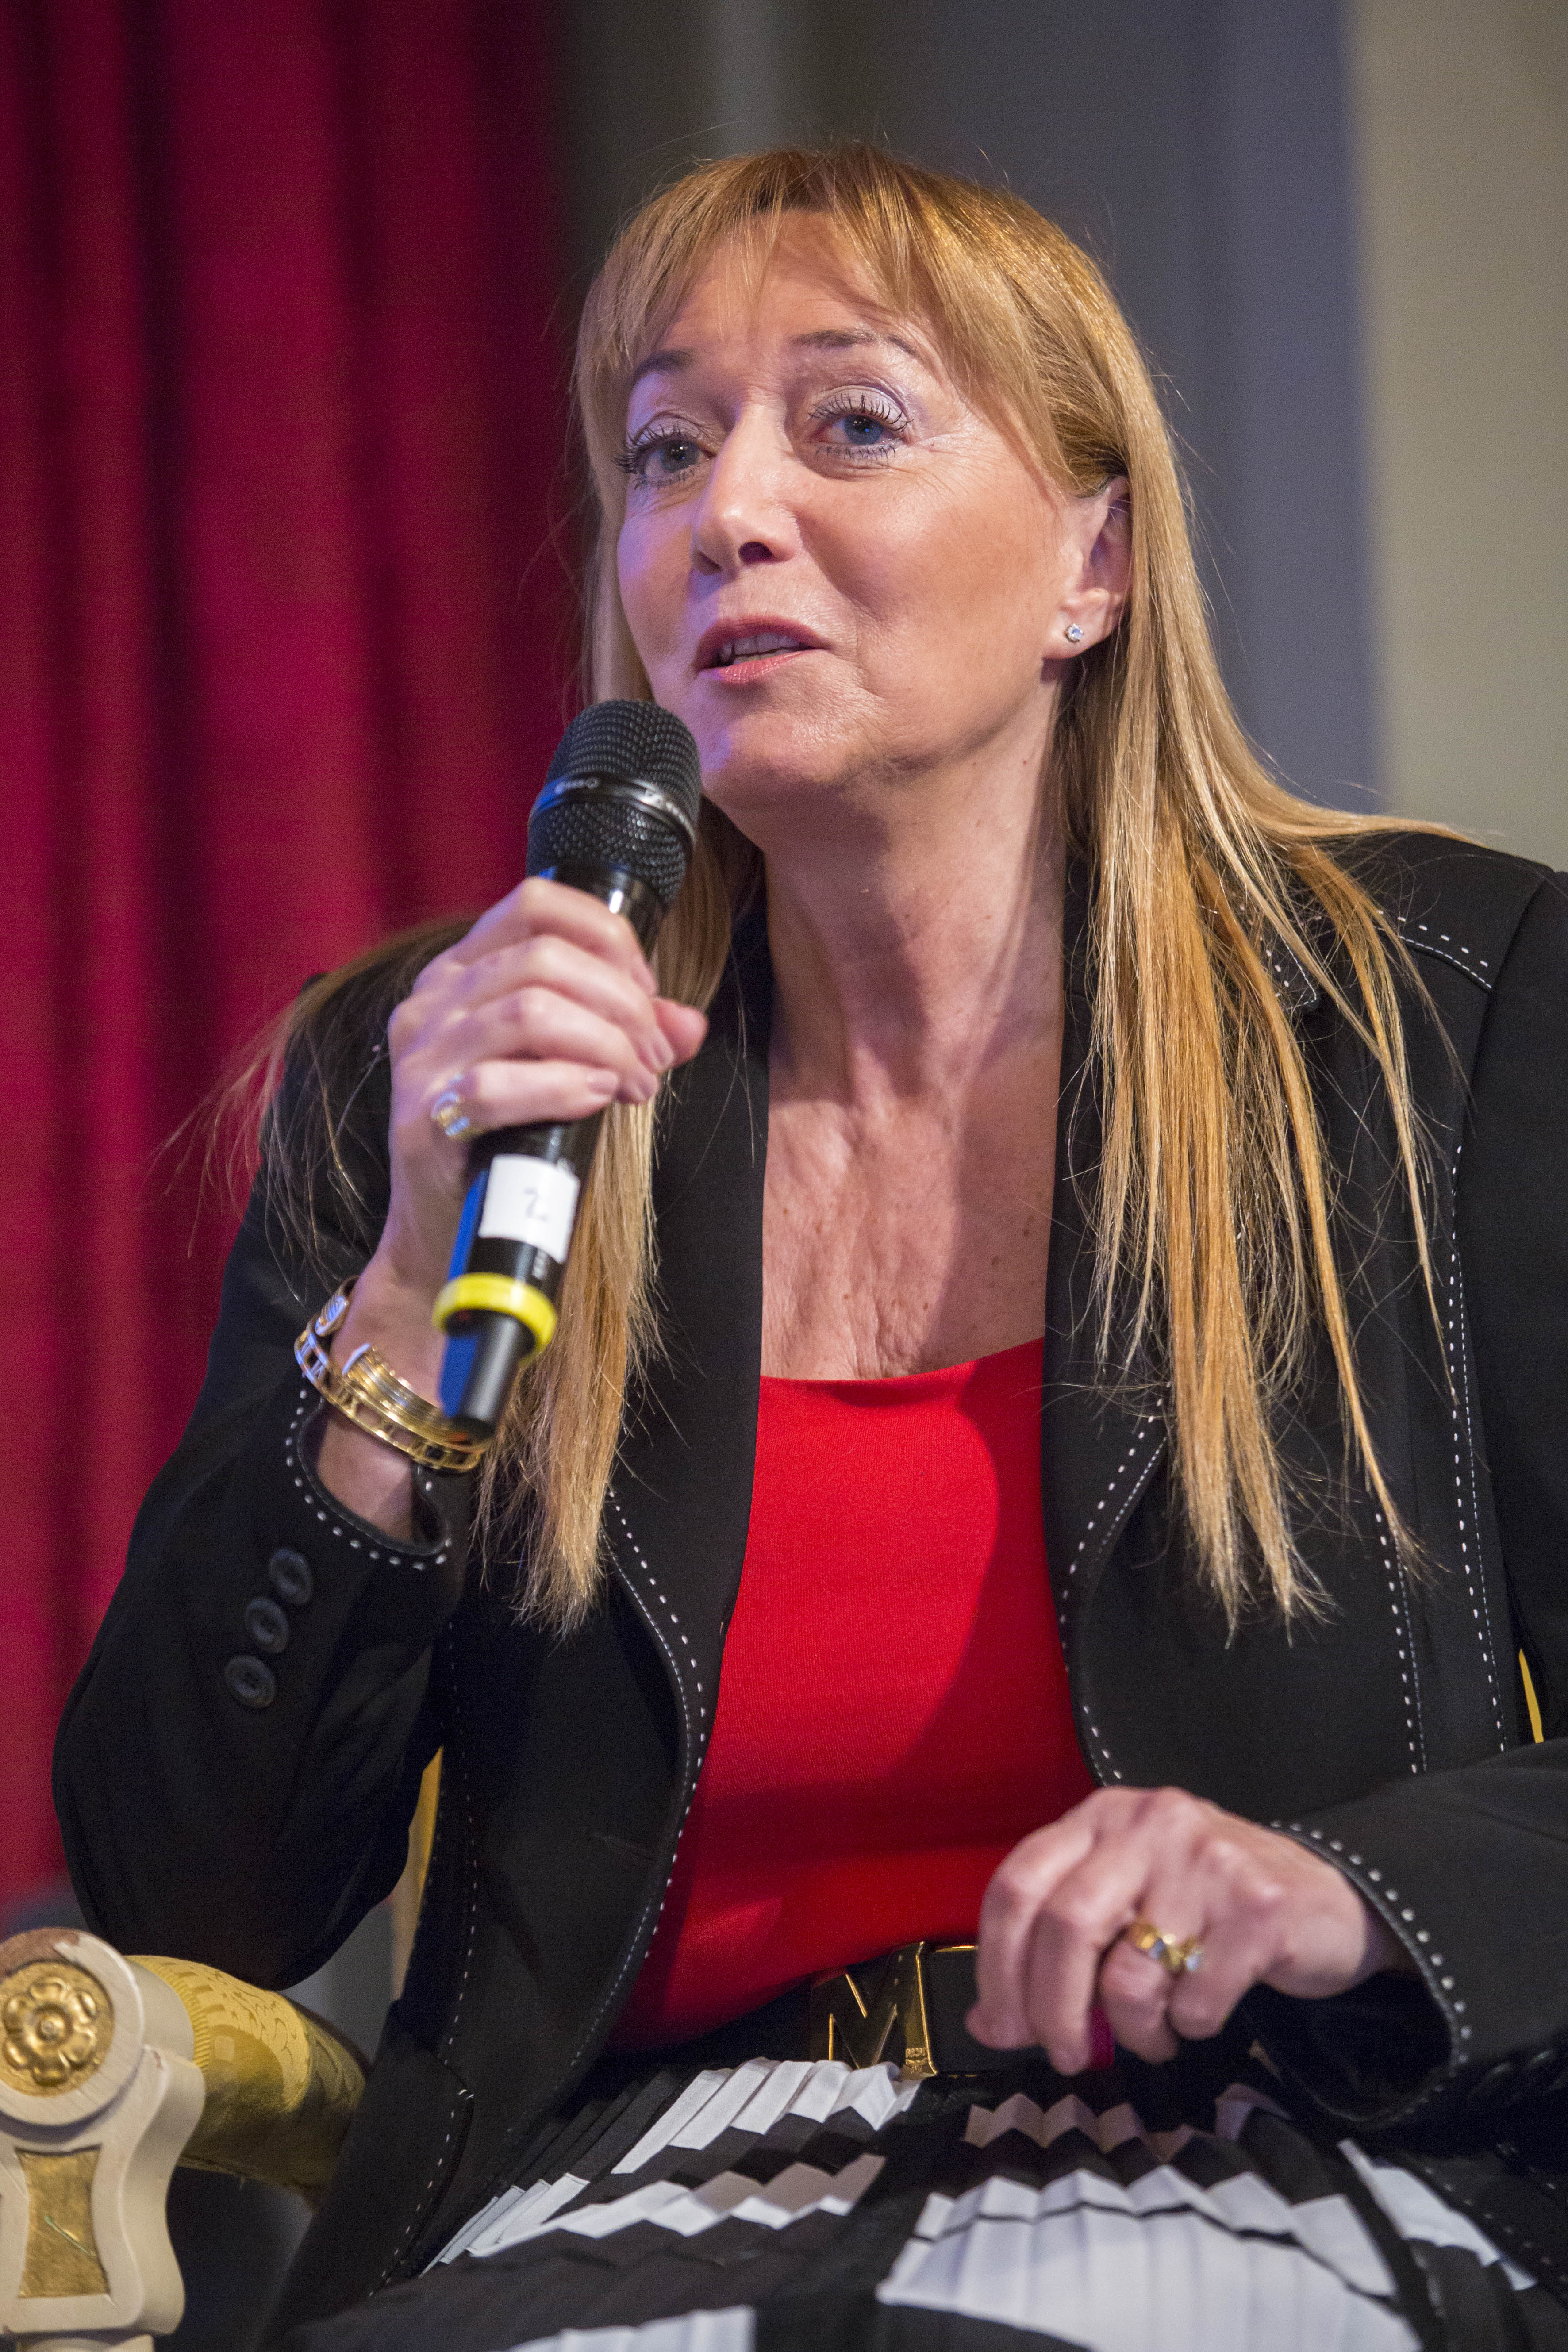 Marlene Mizzi, Vice-Chair of the Committee on Petitions, European Parliament